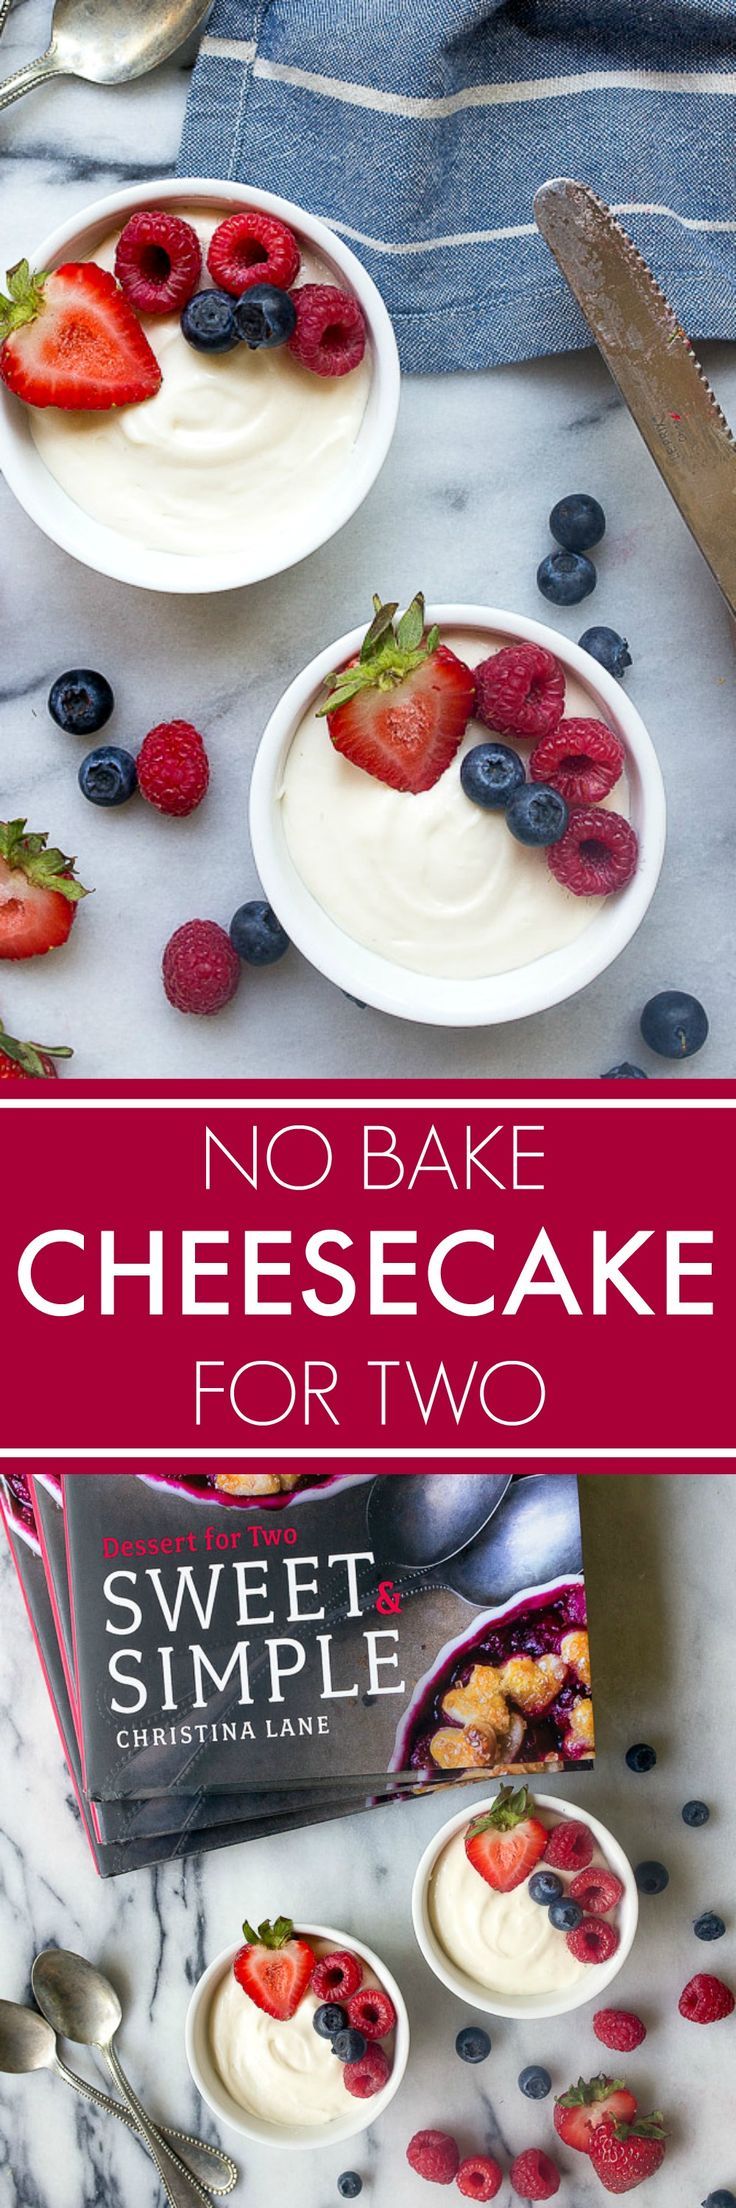 No bake cheesecake for two. Perfect 4th of July dessert idea. Small batch cheesecake two servings. Baking for two.